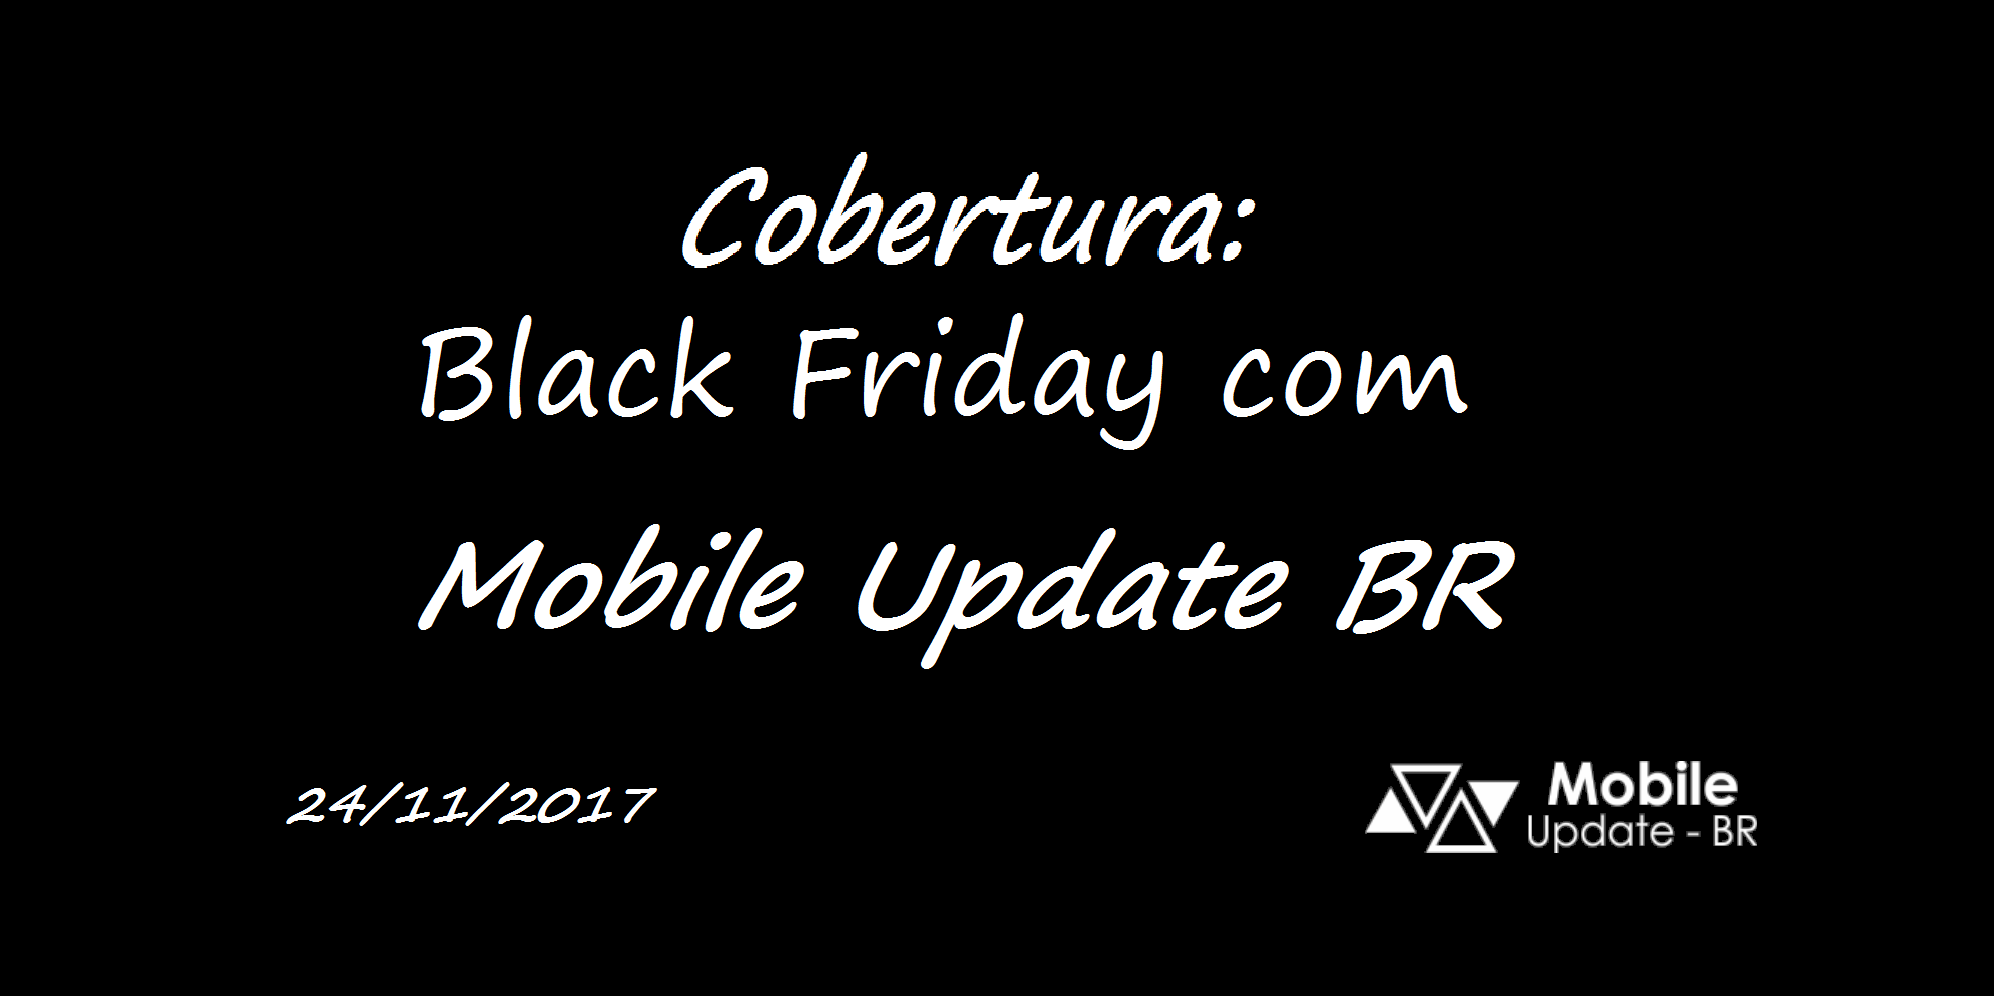 Black Friday 2017: Cobertura Mobile Update BR